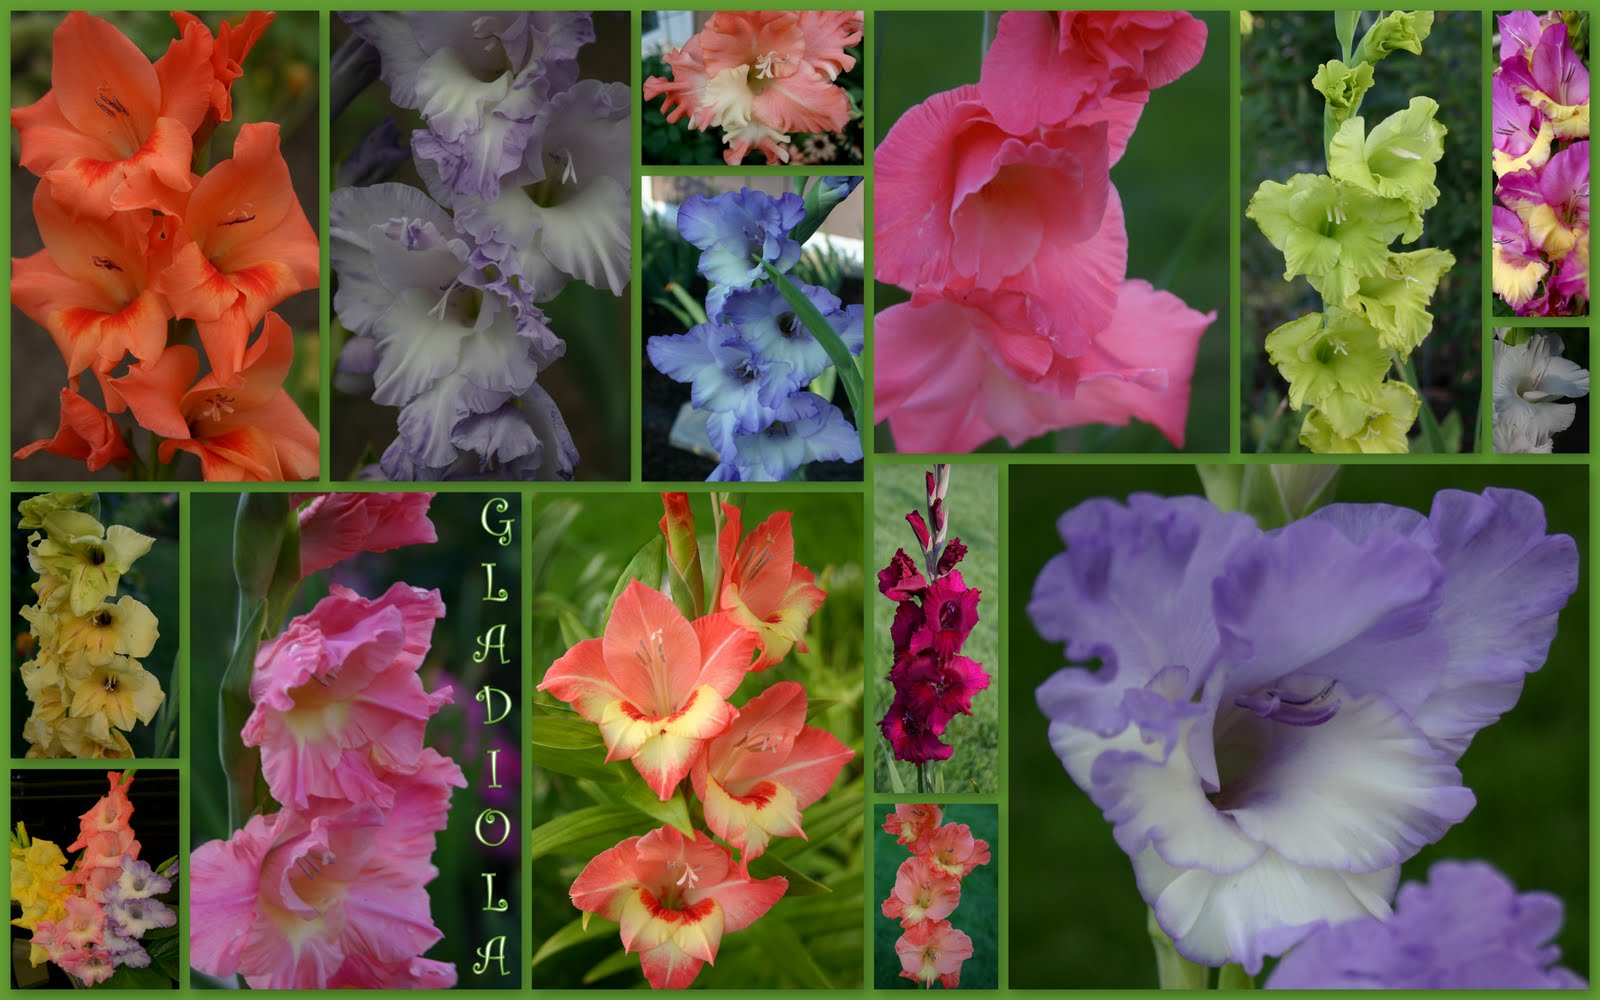 Gladiola Plant Now At Intervals For Summer Long Beauty